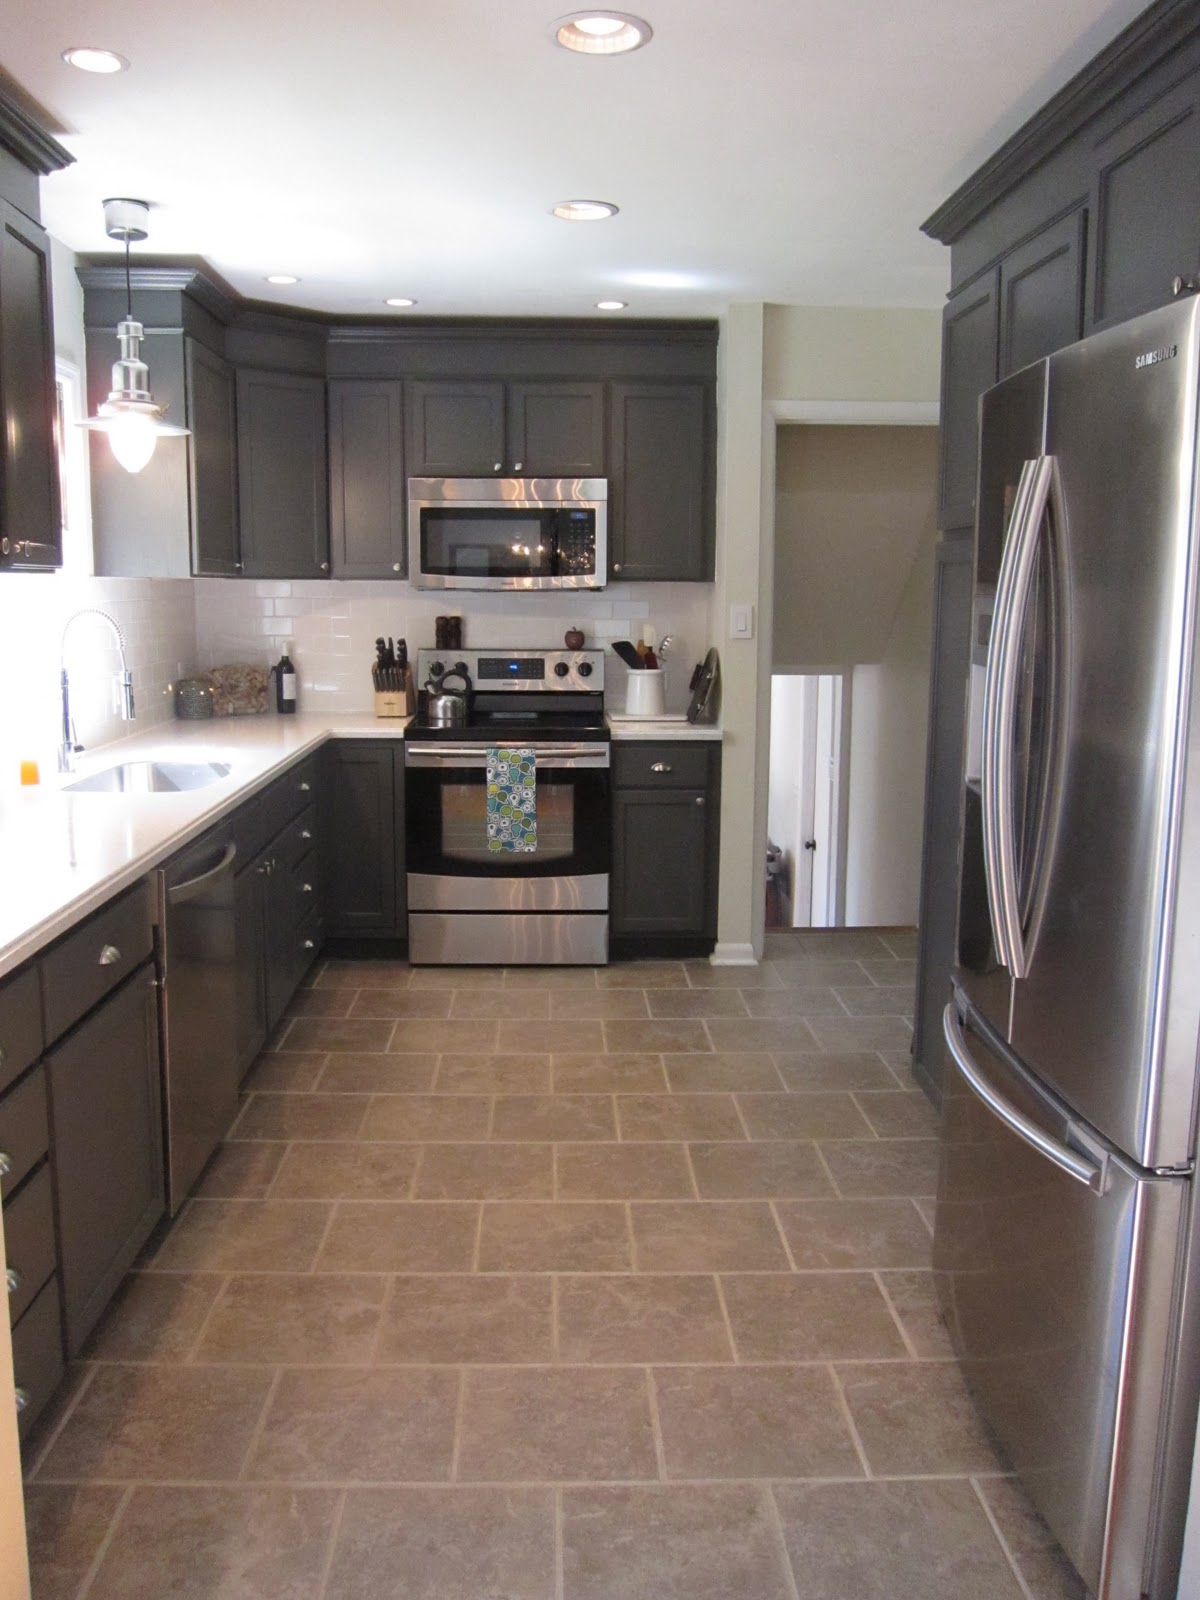 Remodelaholic | Kitchen Redo With Dark Gray Cabinets U0026 White Subway Tile